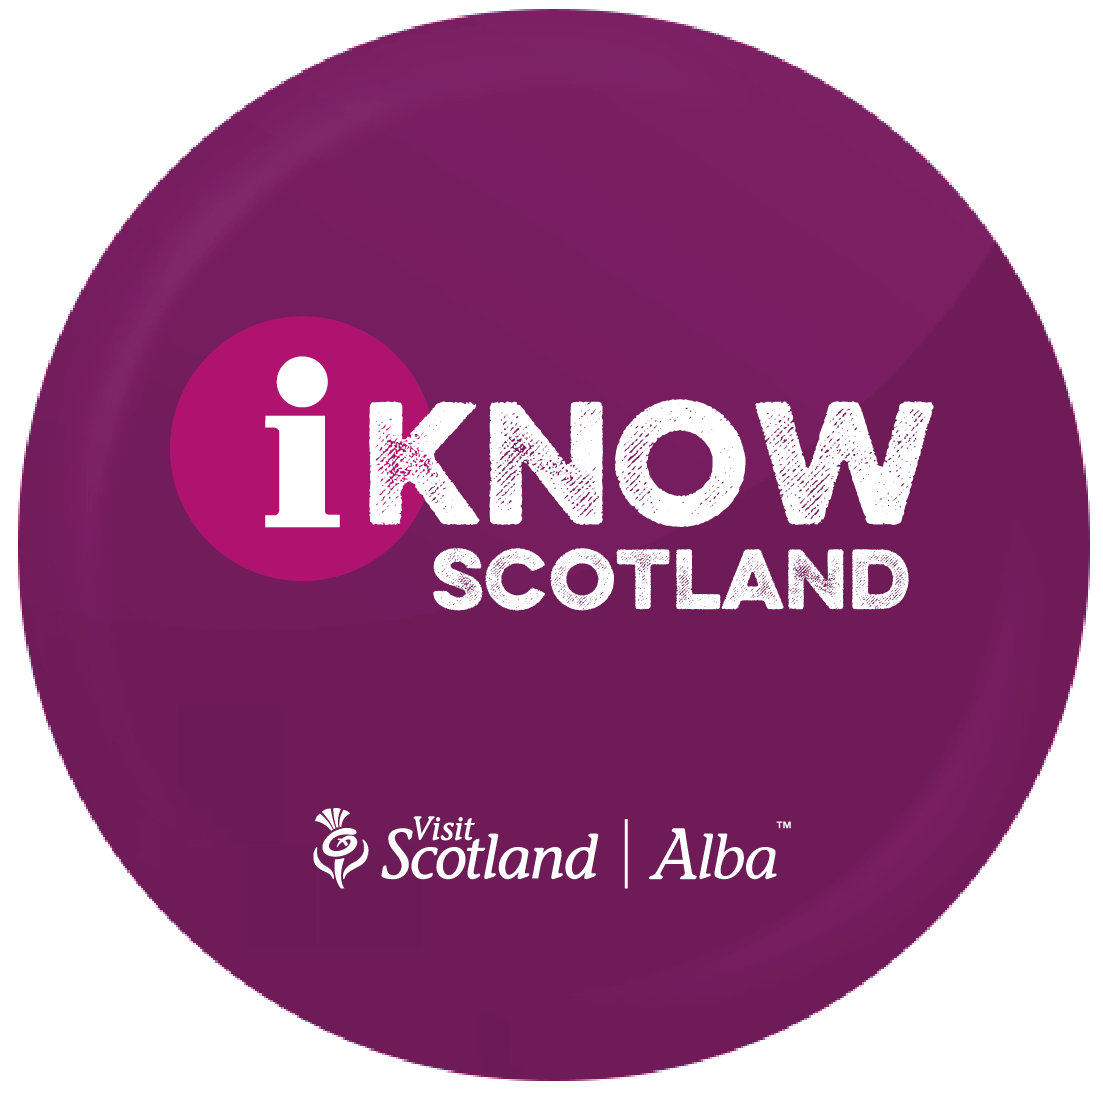 IknowScotland Roundel.png